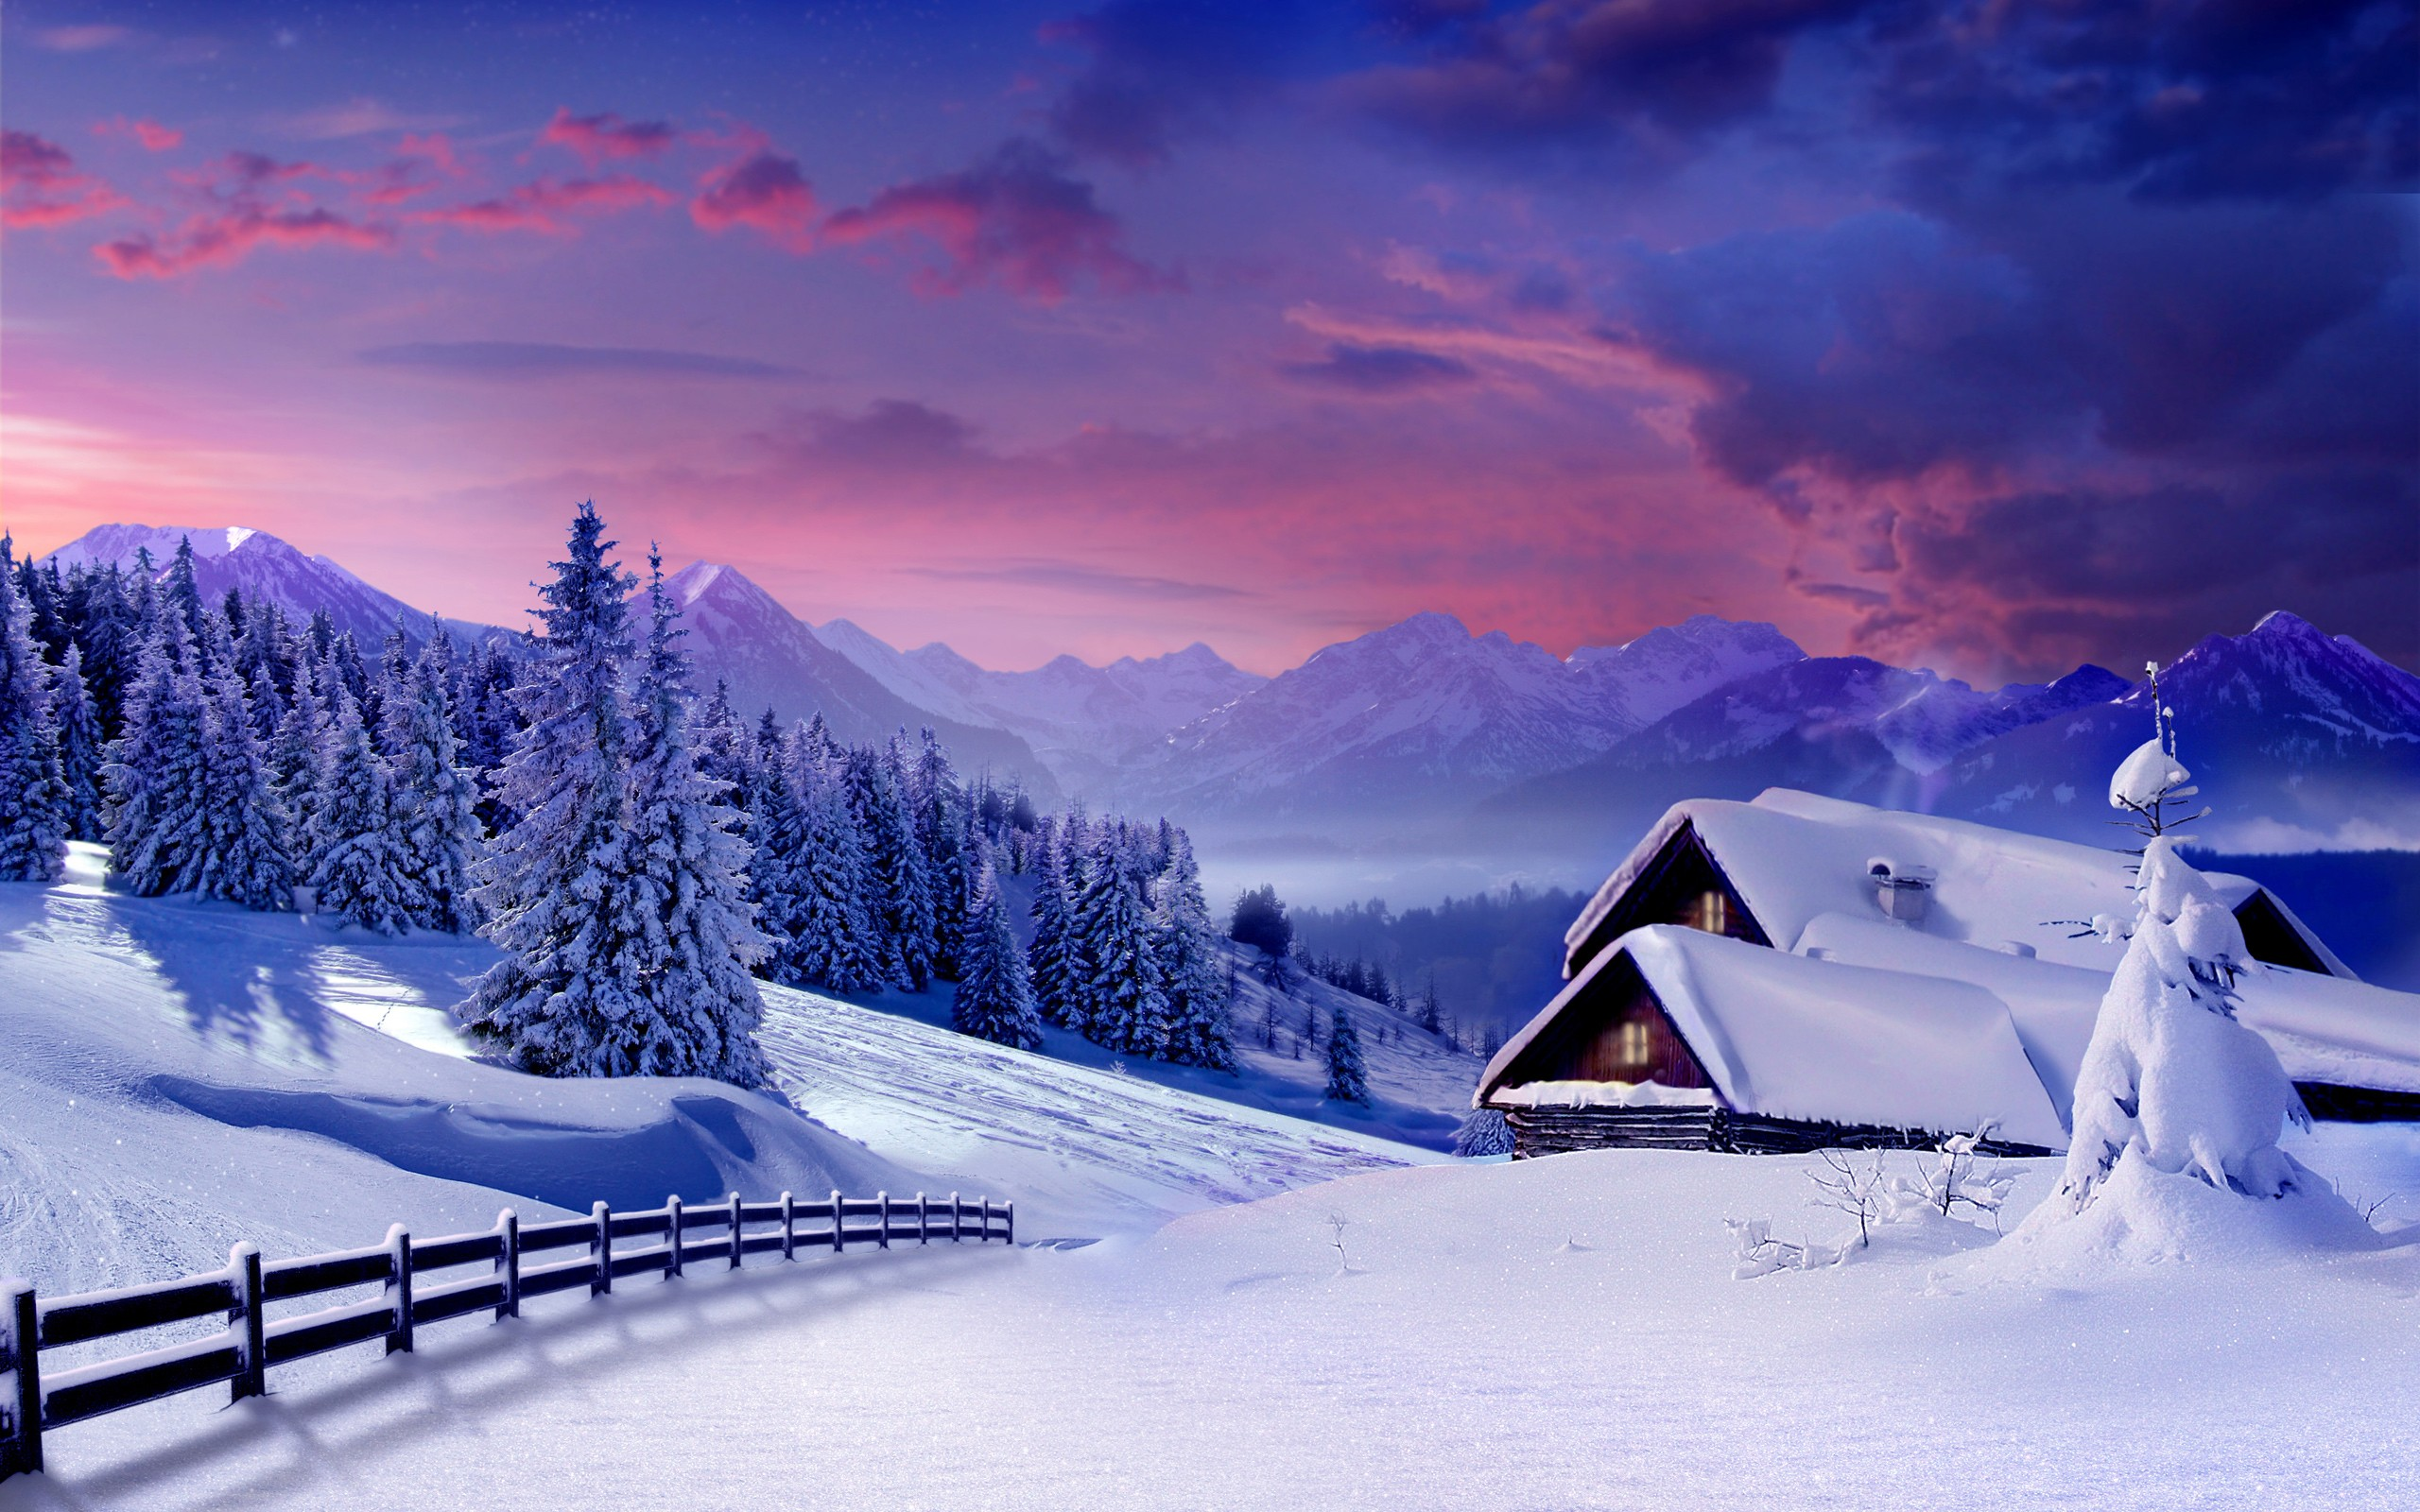 winter wallpaper hd ·① download free awesome full hd wallpapers for